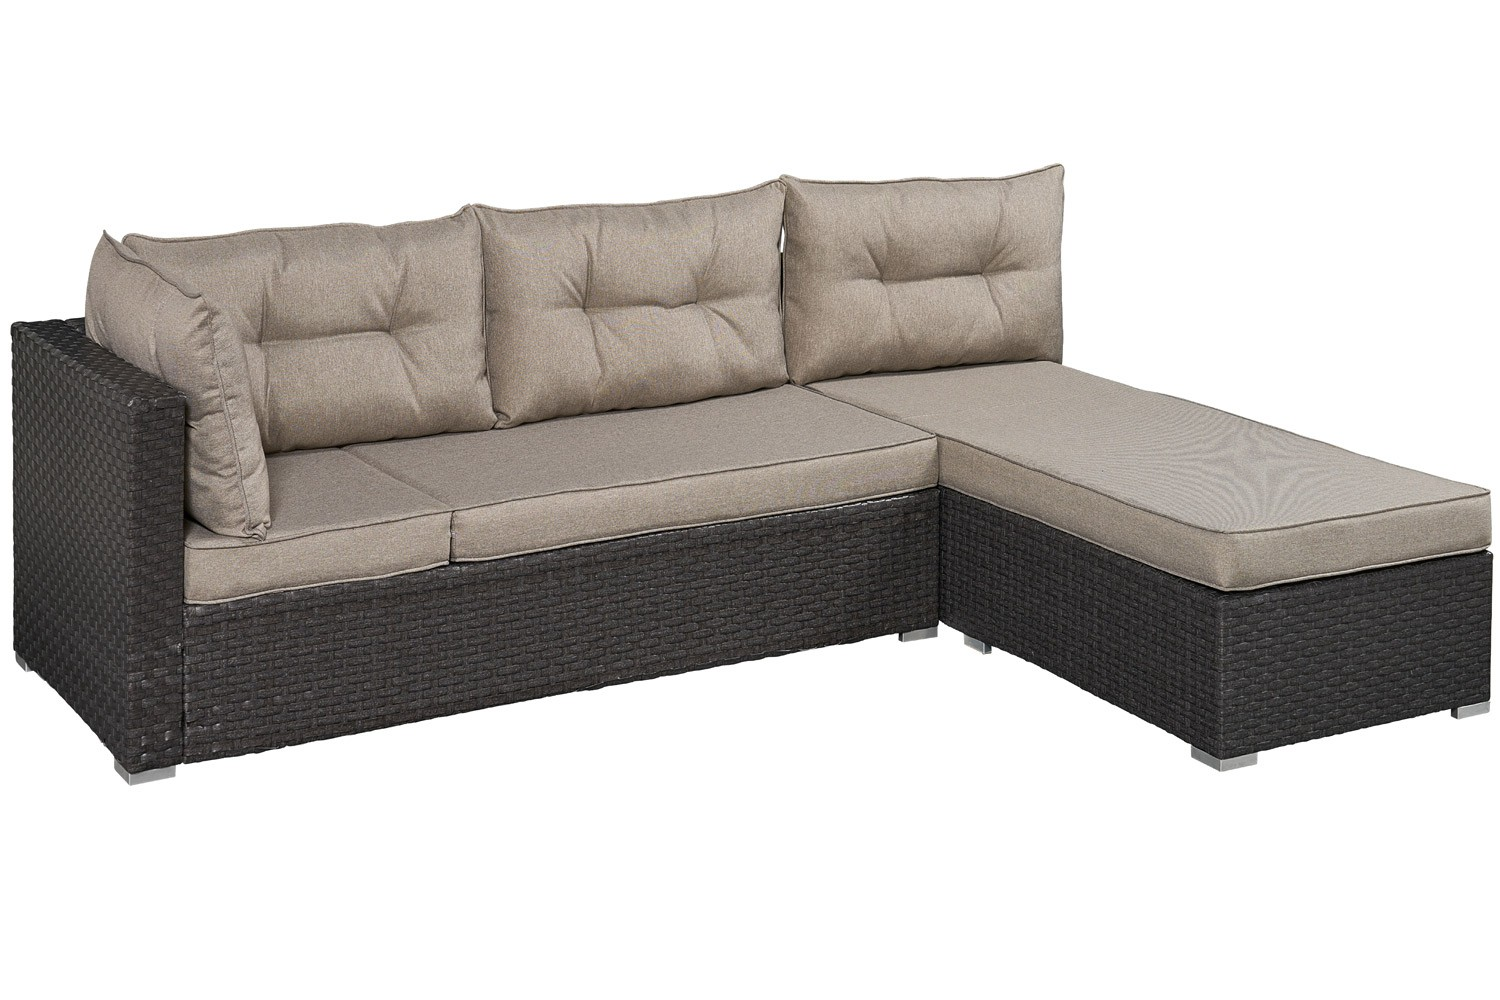 Big Sofa San Juan Shipping Futons To California Futon Sofa Beds Delivered To